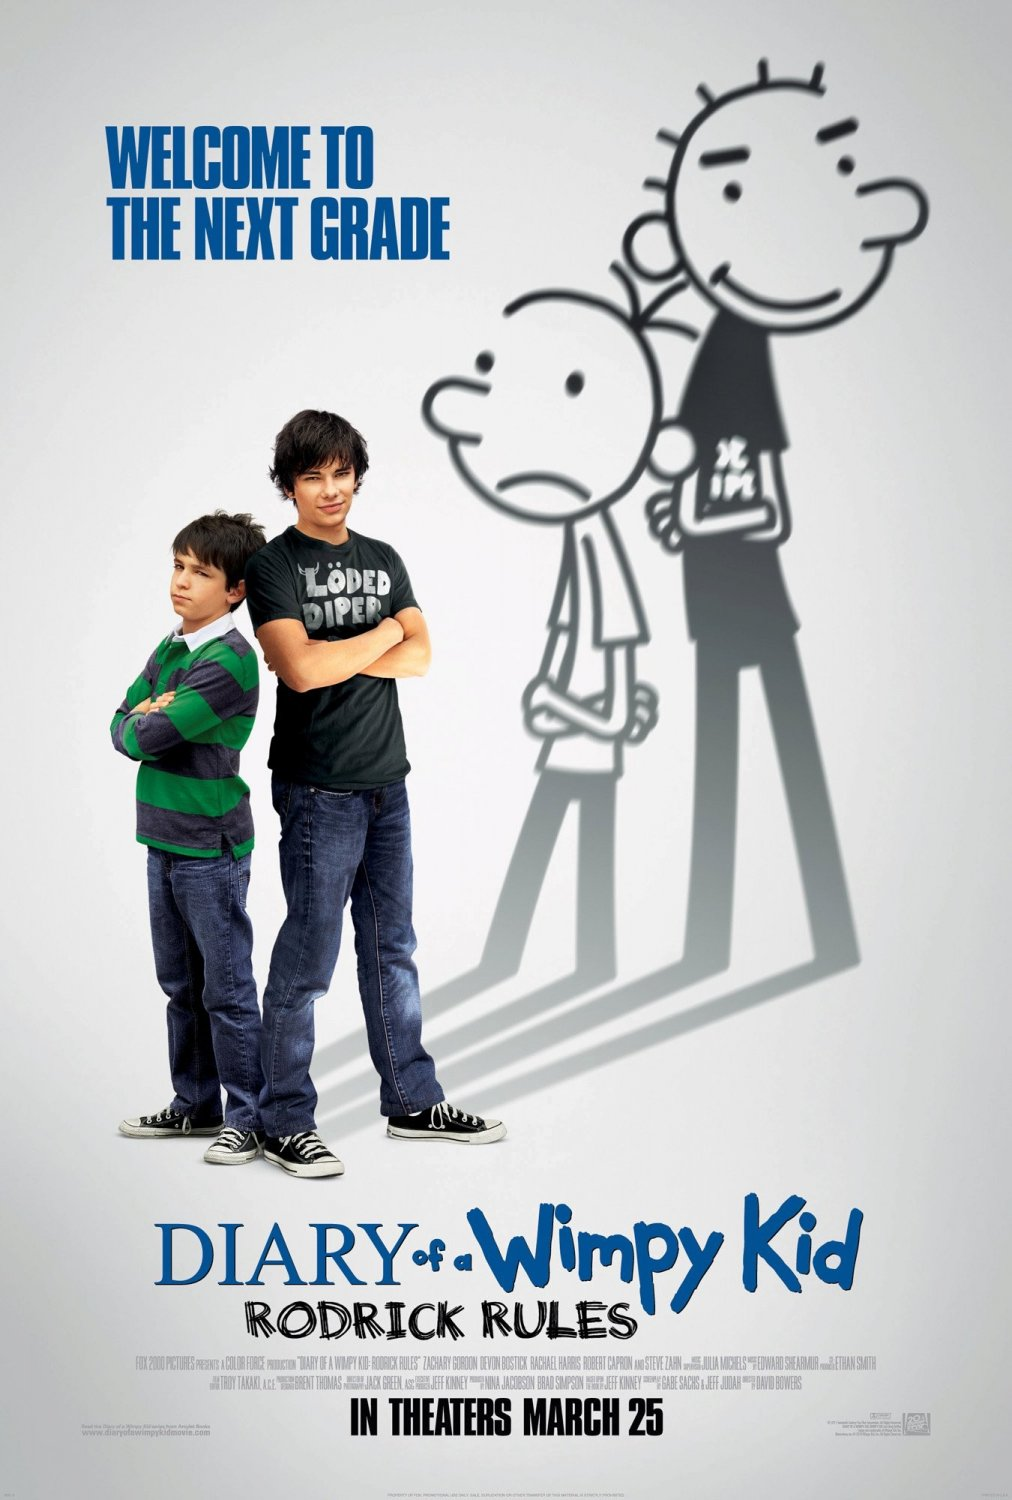 Diary of a Wimpy Kid #11: Double Down: Jeff